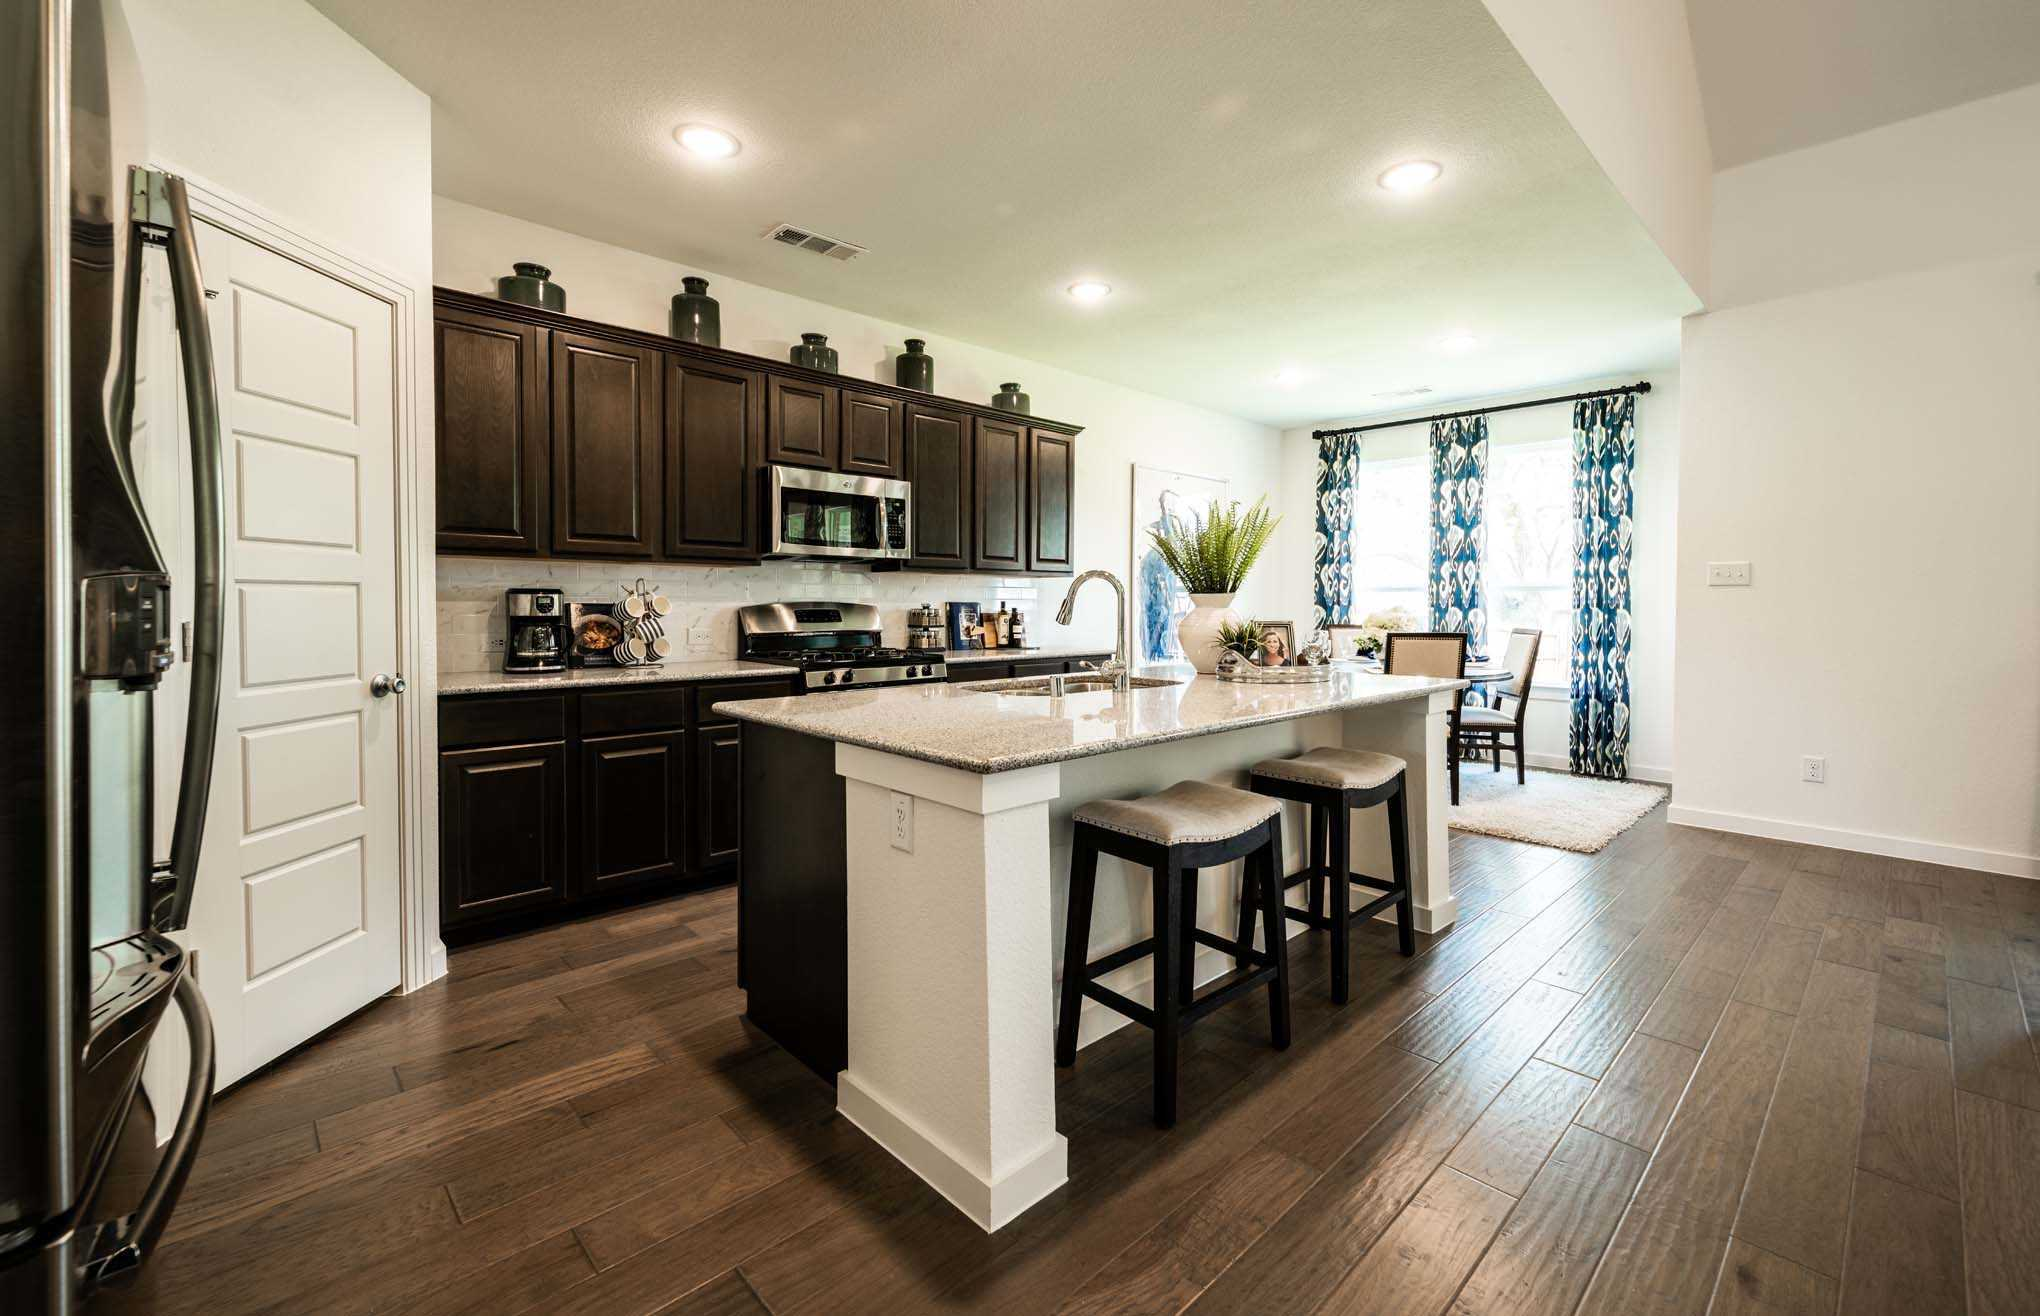 Kitchen featured in the Plan Yorkshire By Highland Homes in Dallas, TX